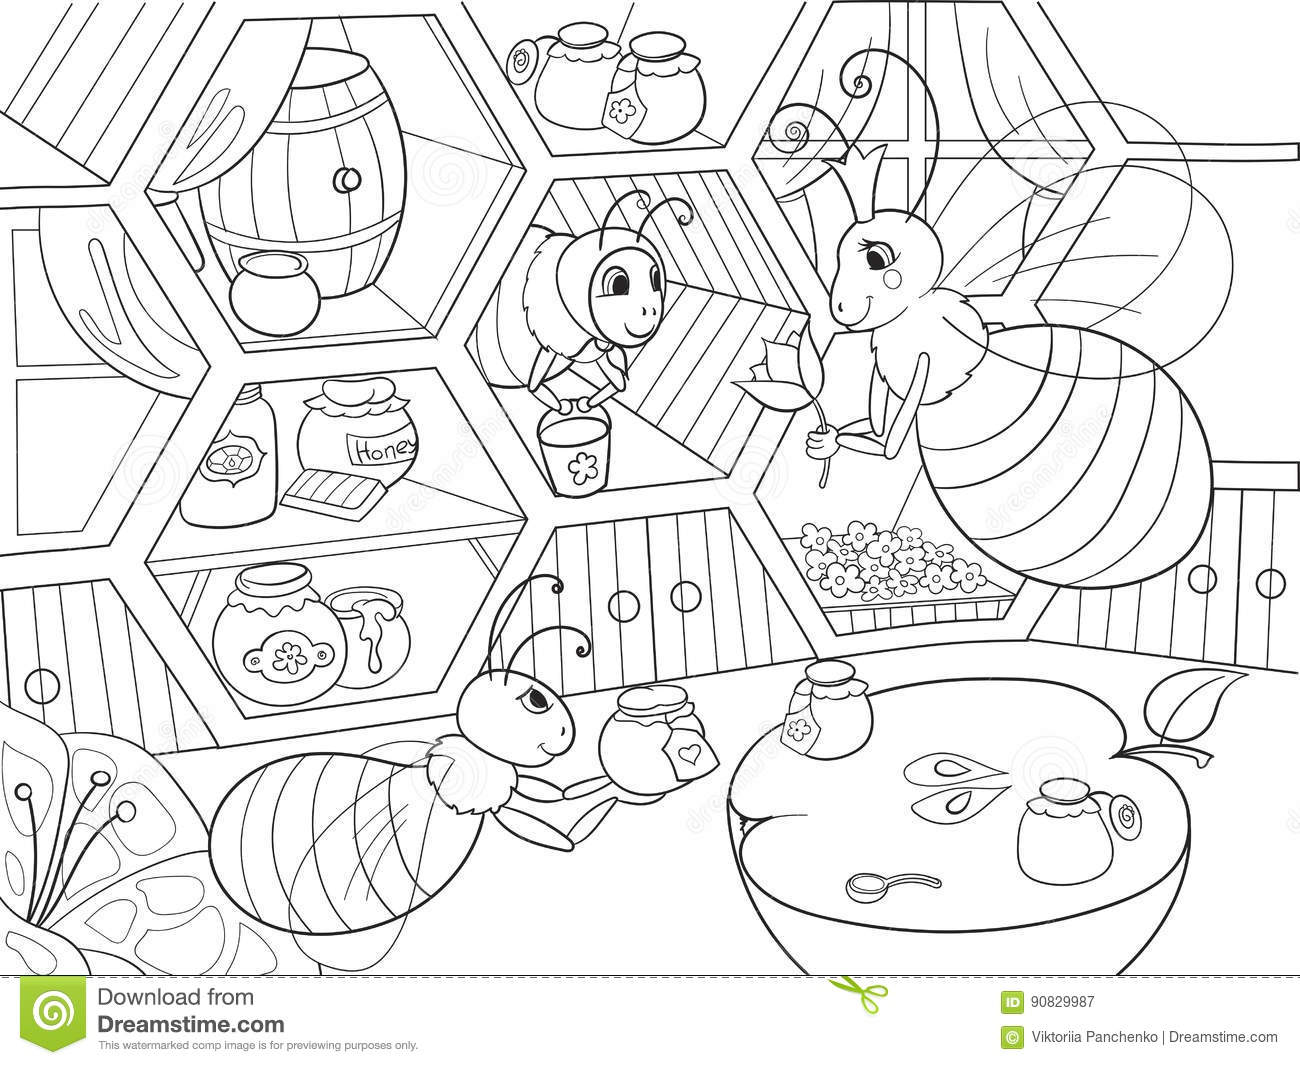 Interior and family life of bees in the house coloring for for Zentangle per bambini